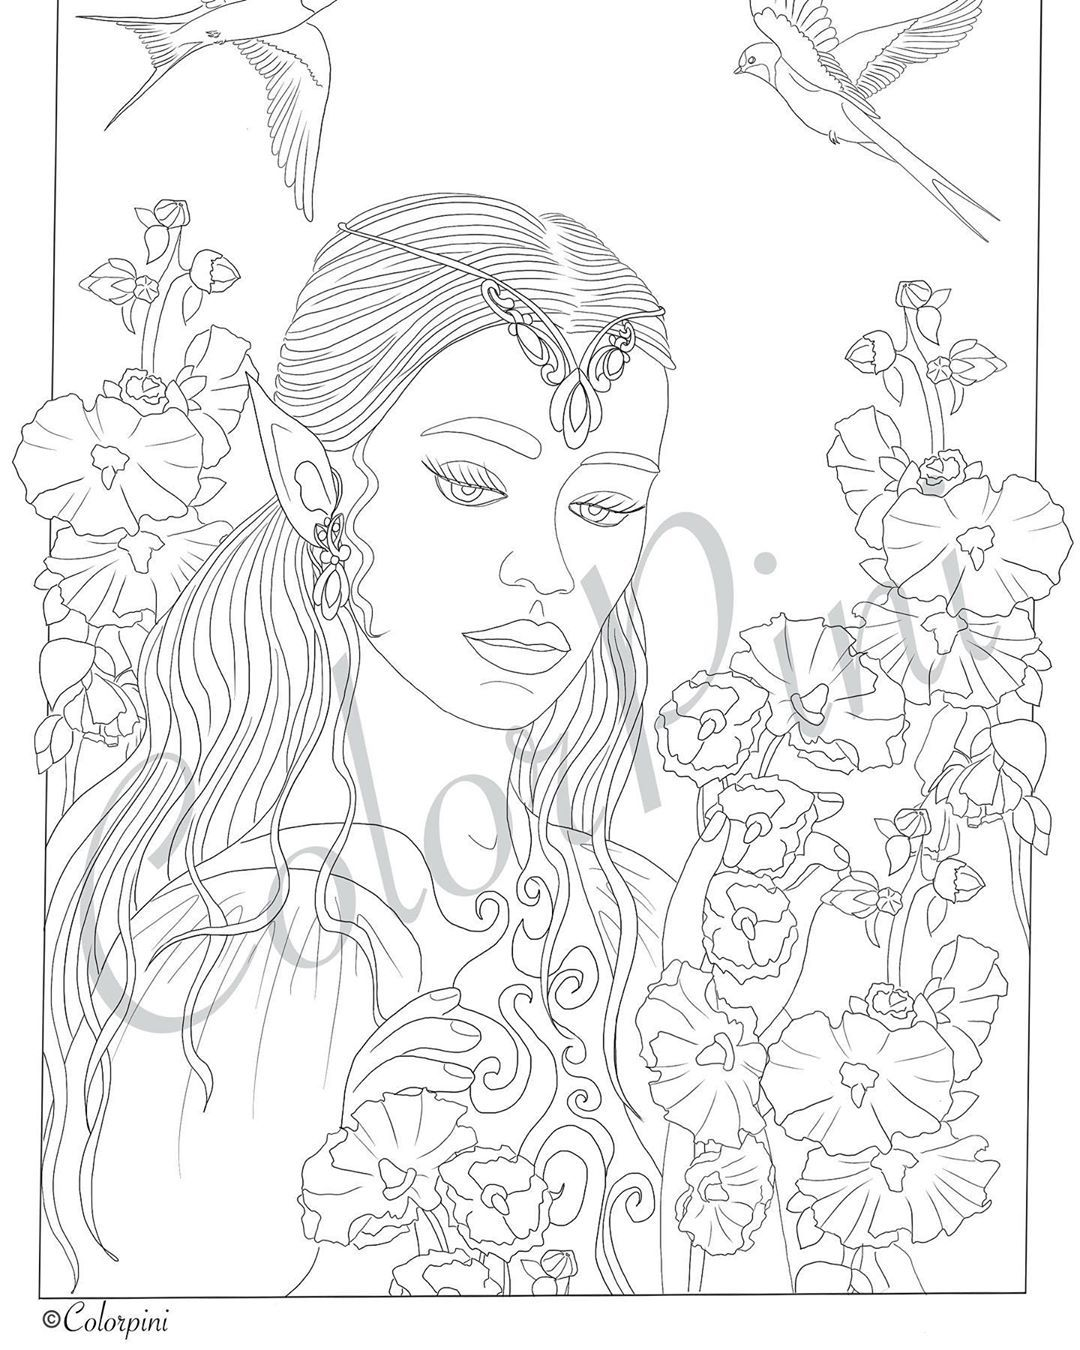 Colorpini On Instagram New Designs New Coloring Pages Are Coming Pencilartwork Coloringpages Adultcoloring Pdfdownload Ets Illustration